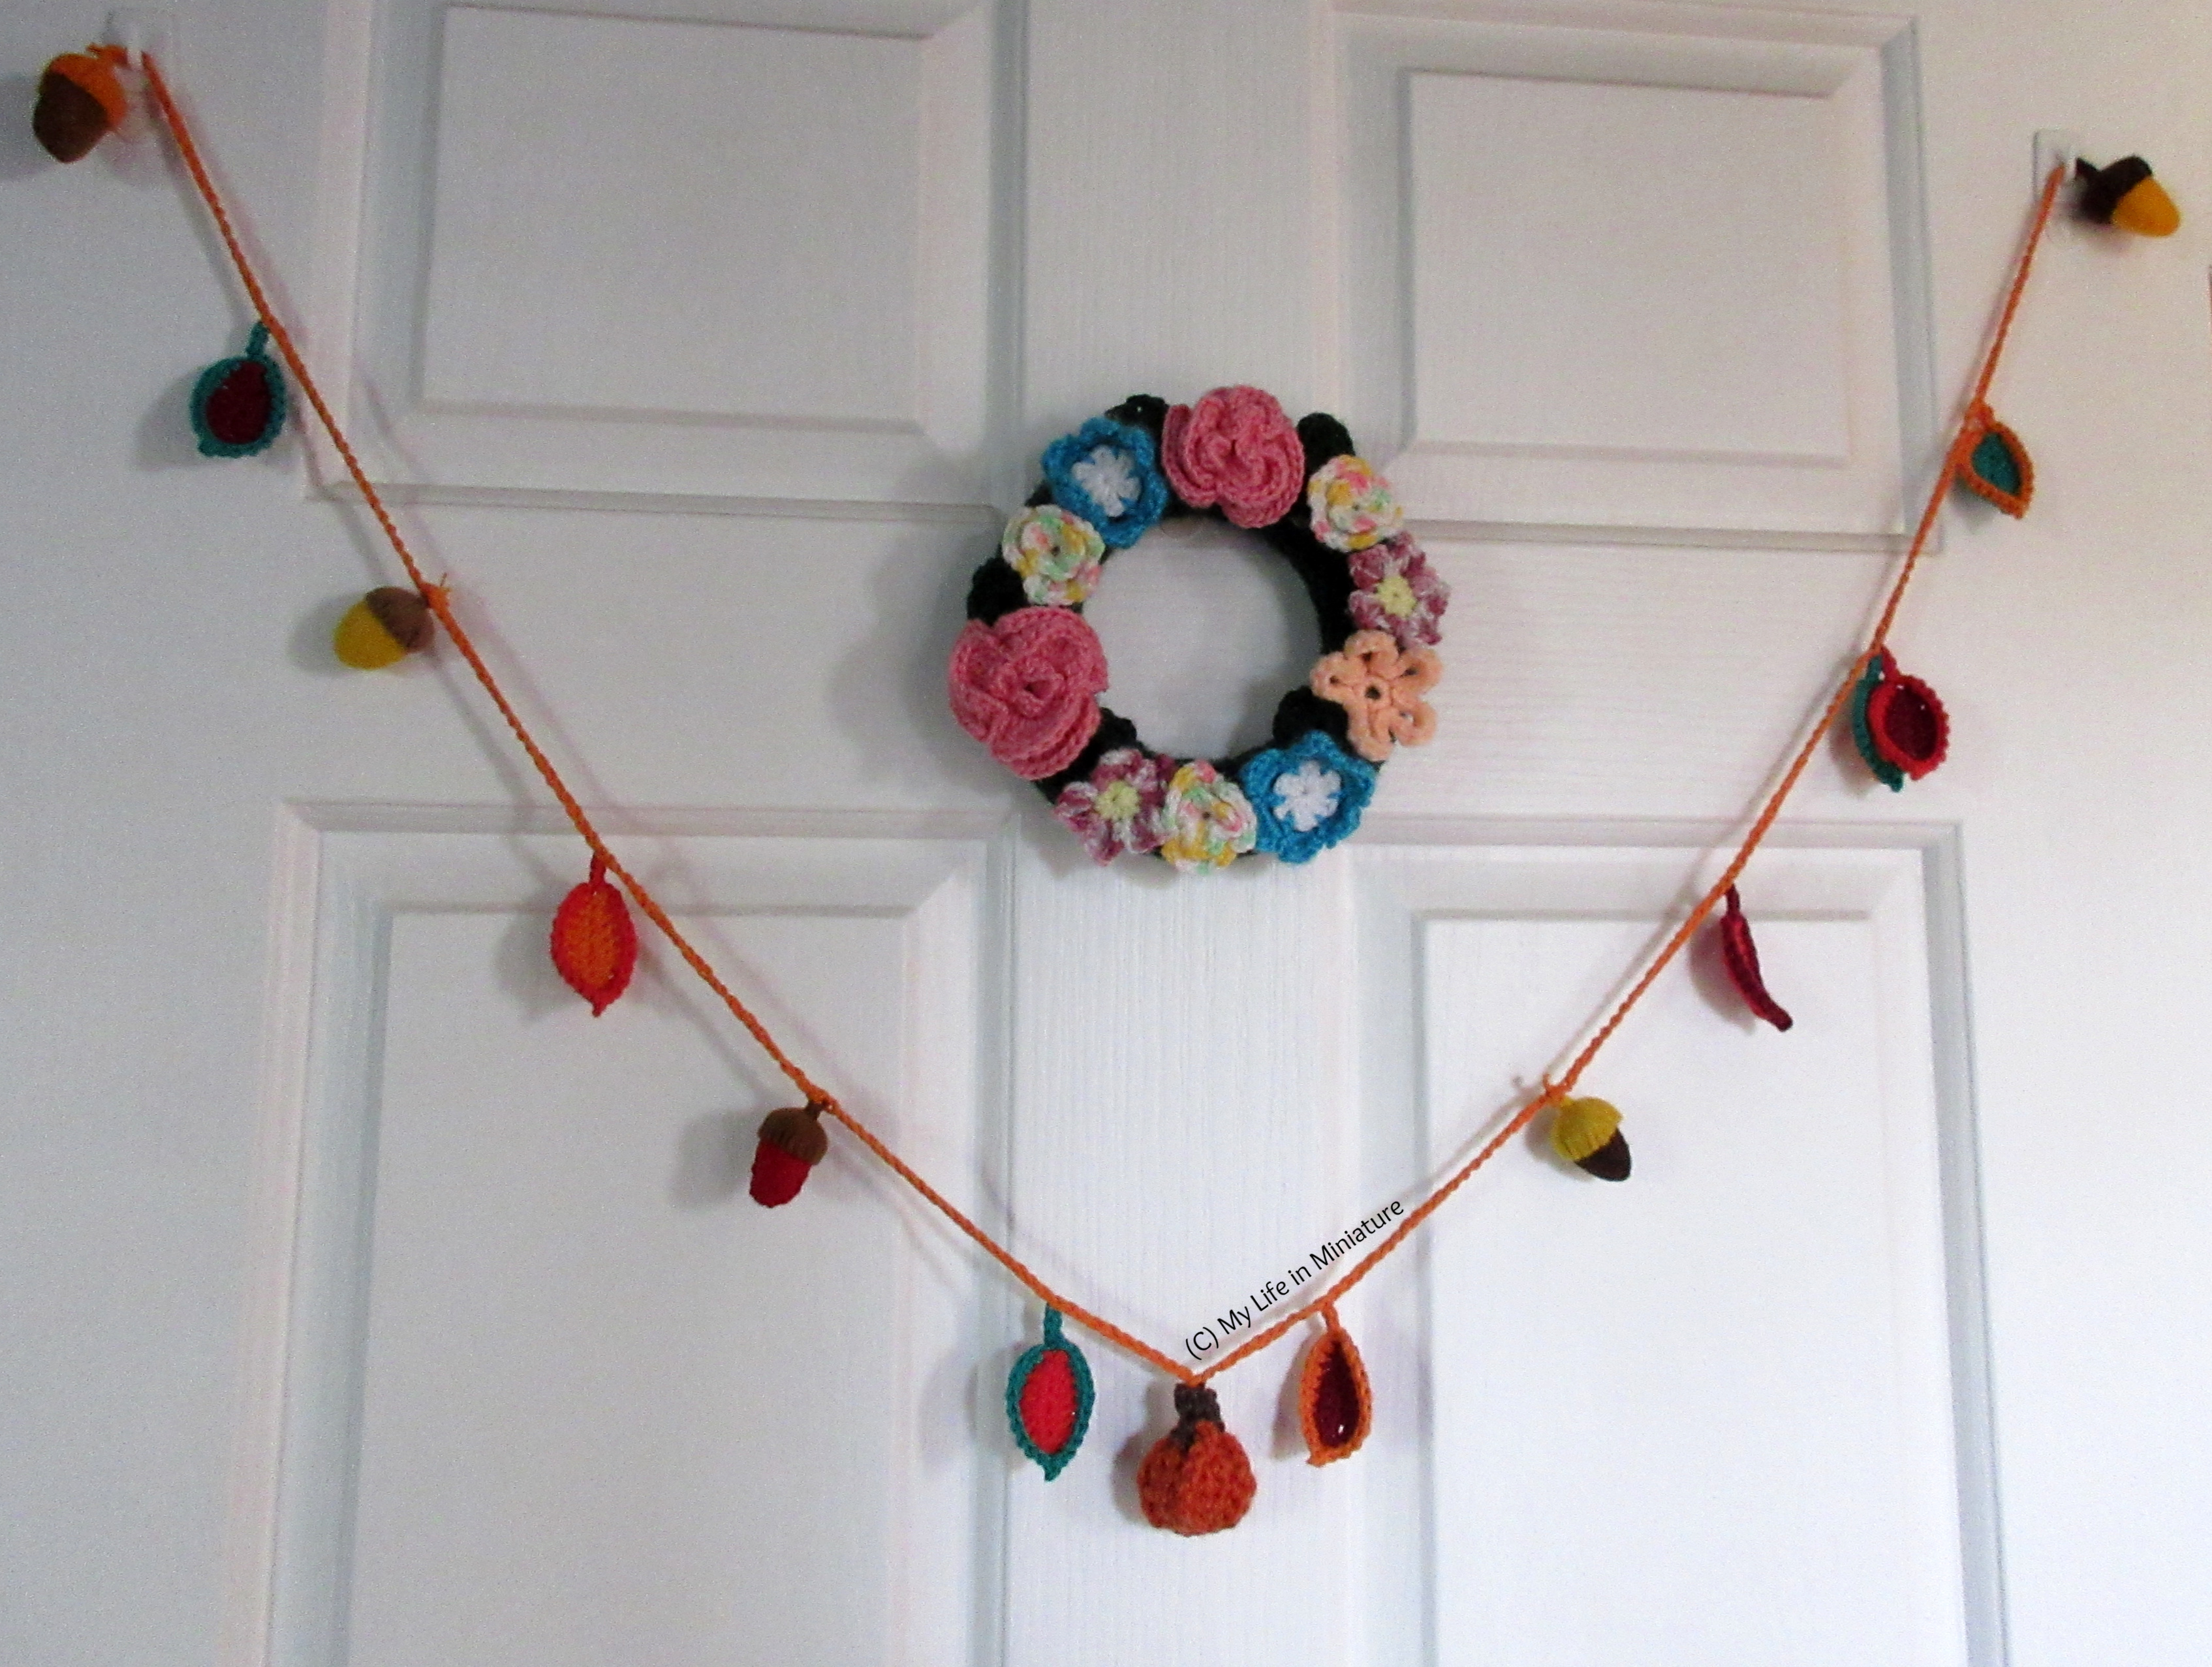 The autumn garland is hung on a door, pumpkin in the centre.